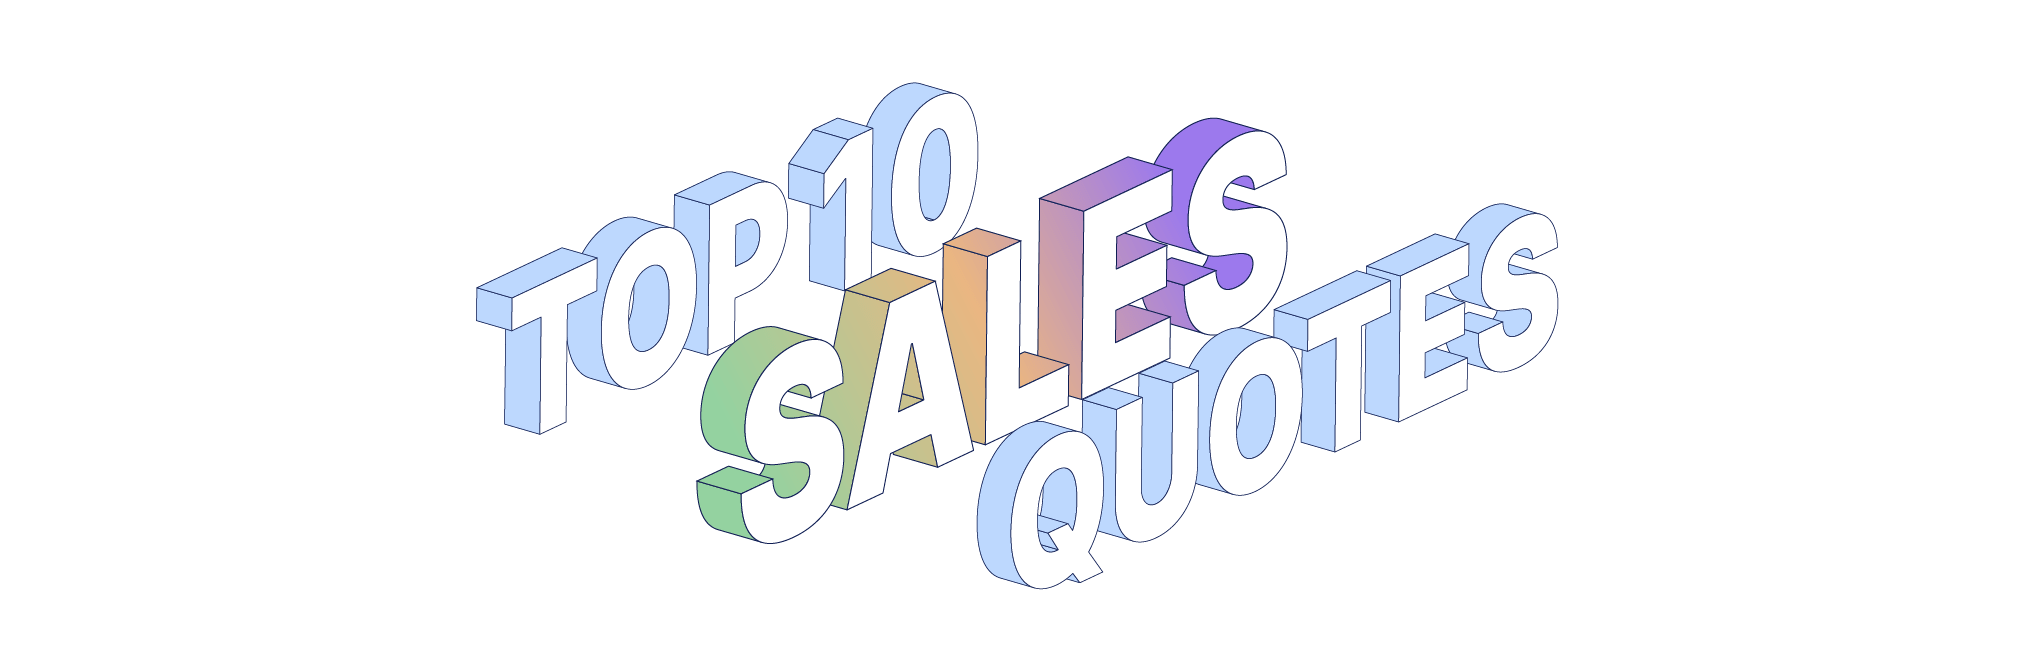 Top 10 Motivational Sales Quotes to Get Your Team Fired Up